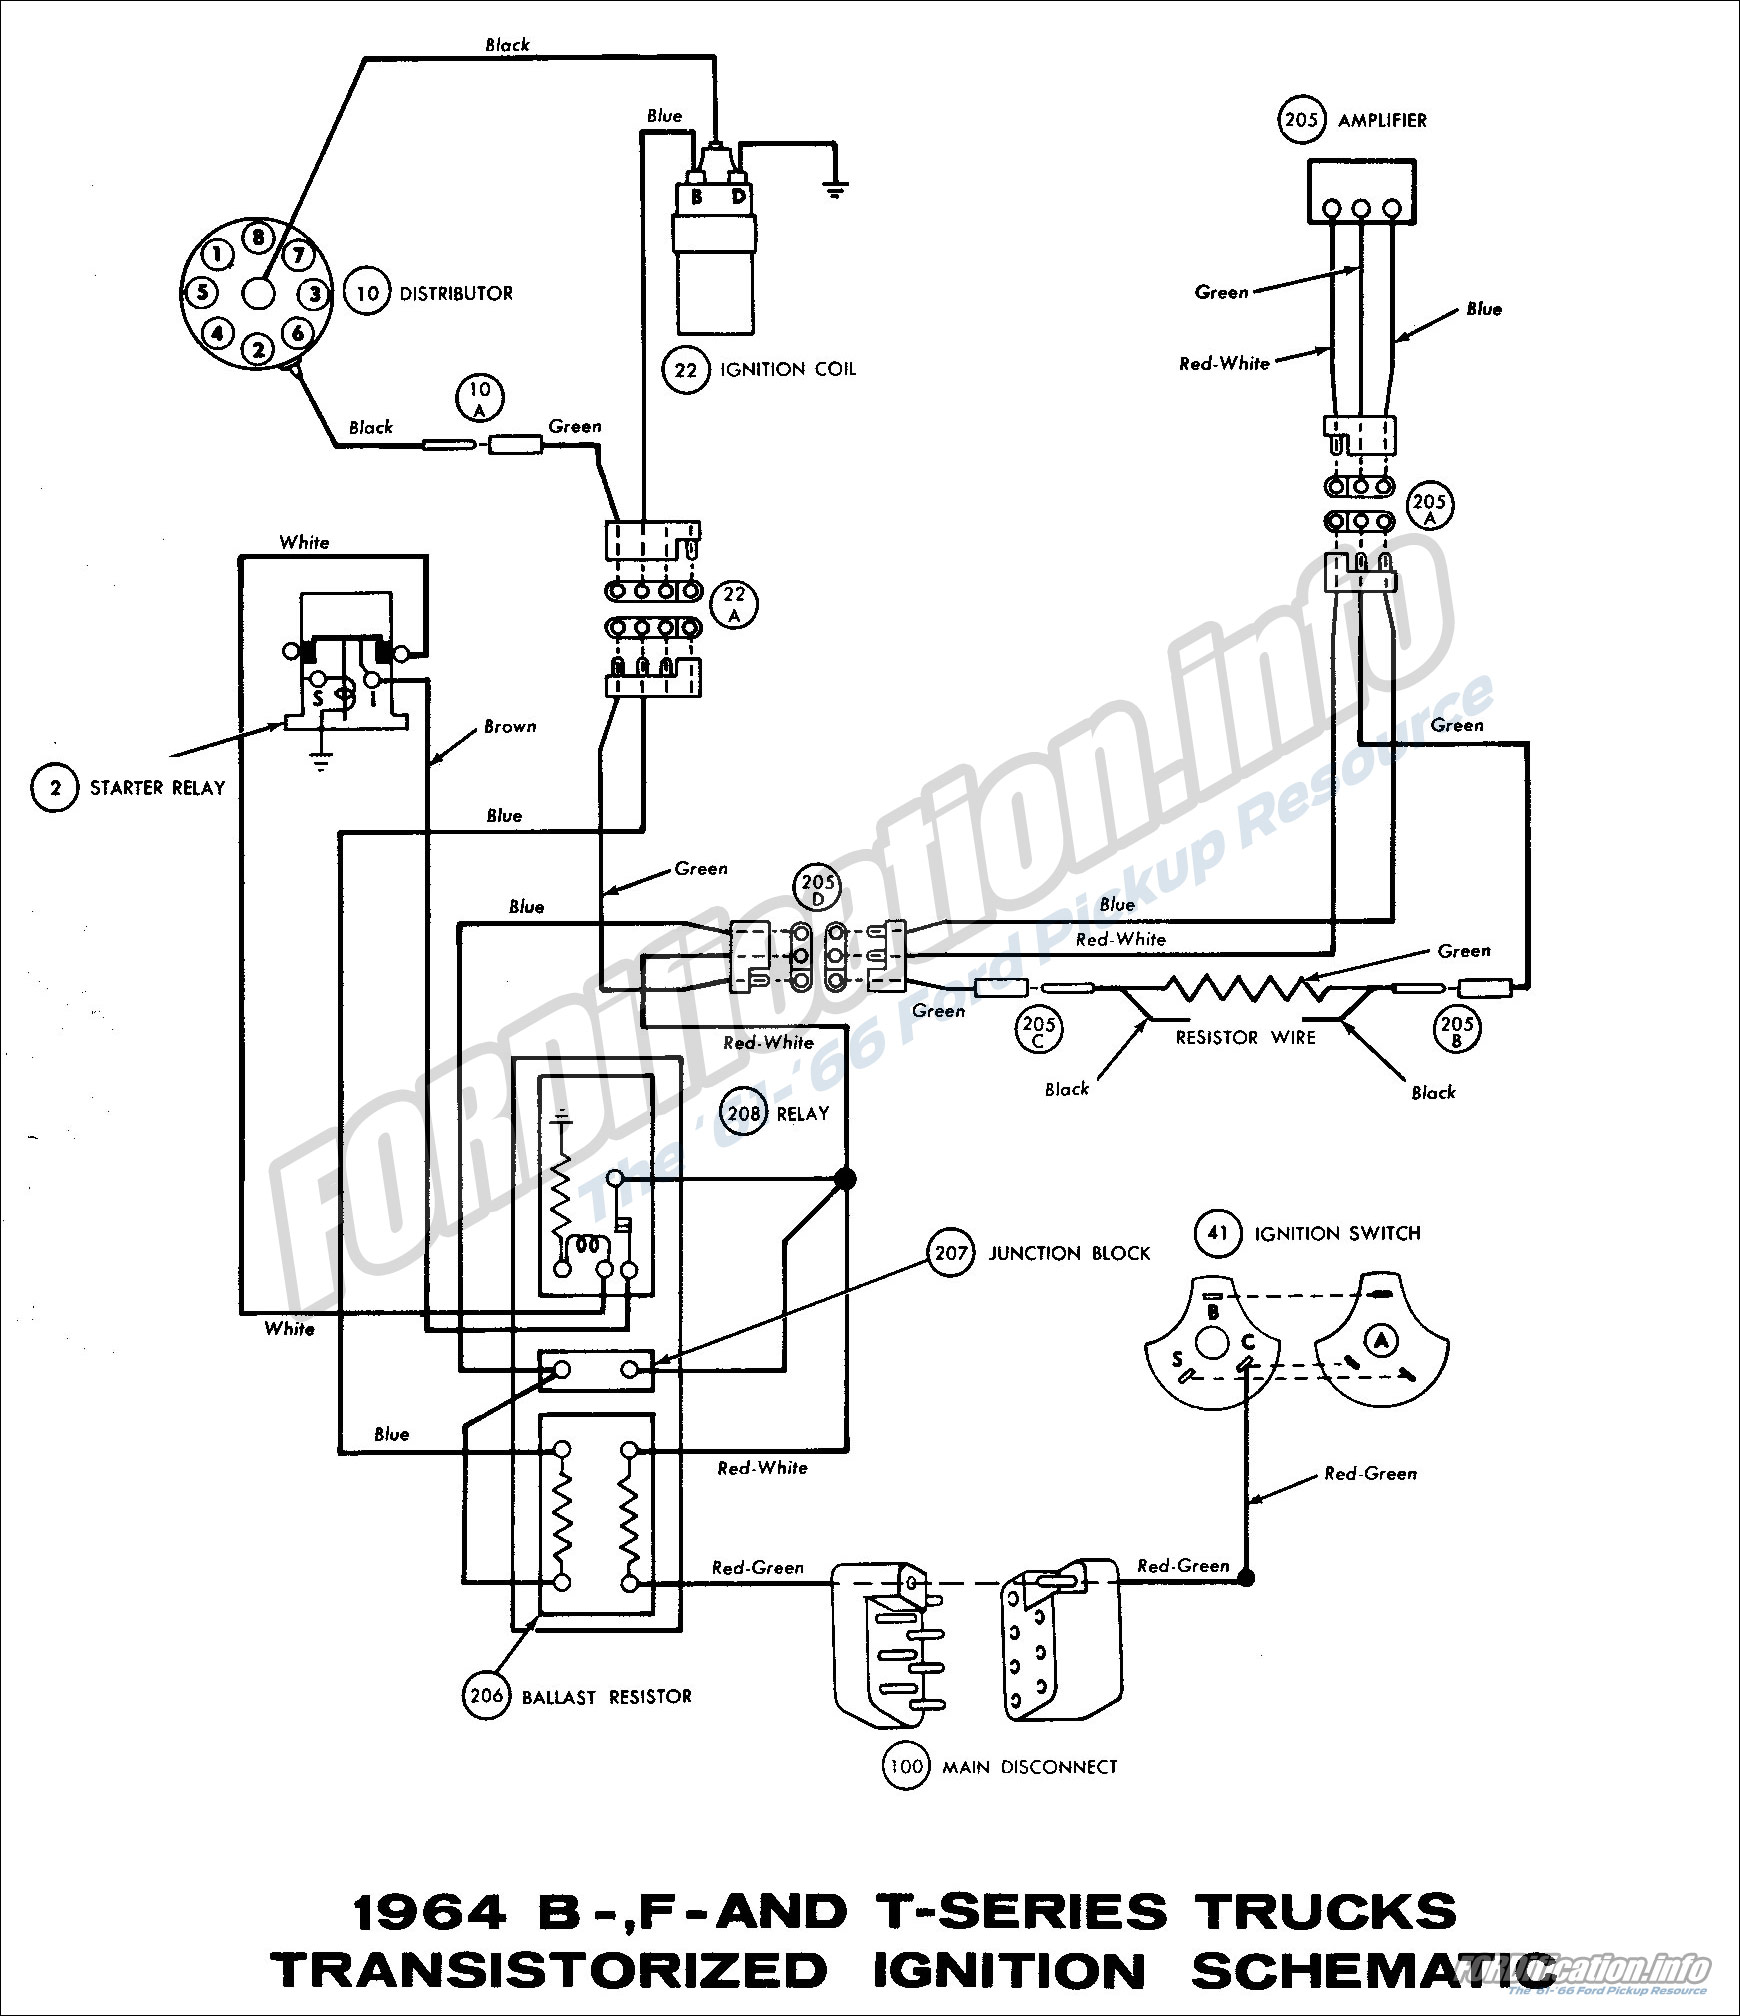 1964 B-, F- and T-series Trucks Transistorized Ignition Schematic